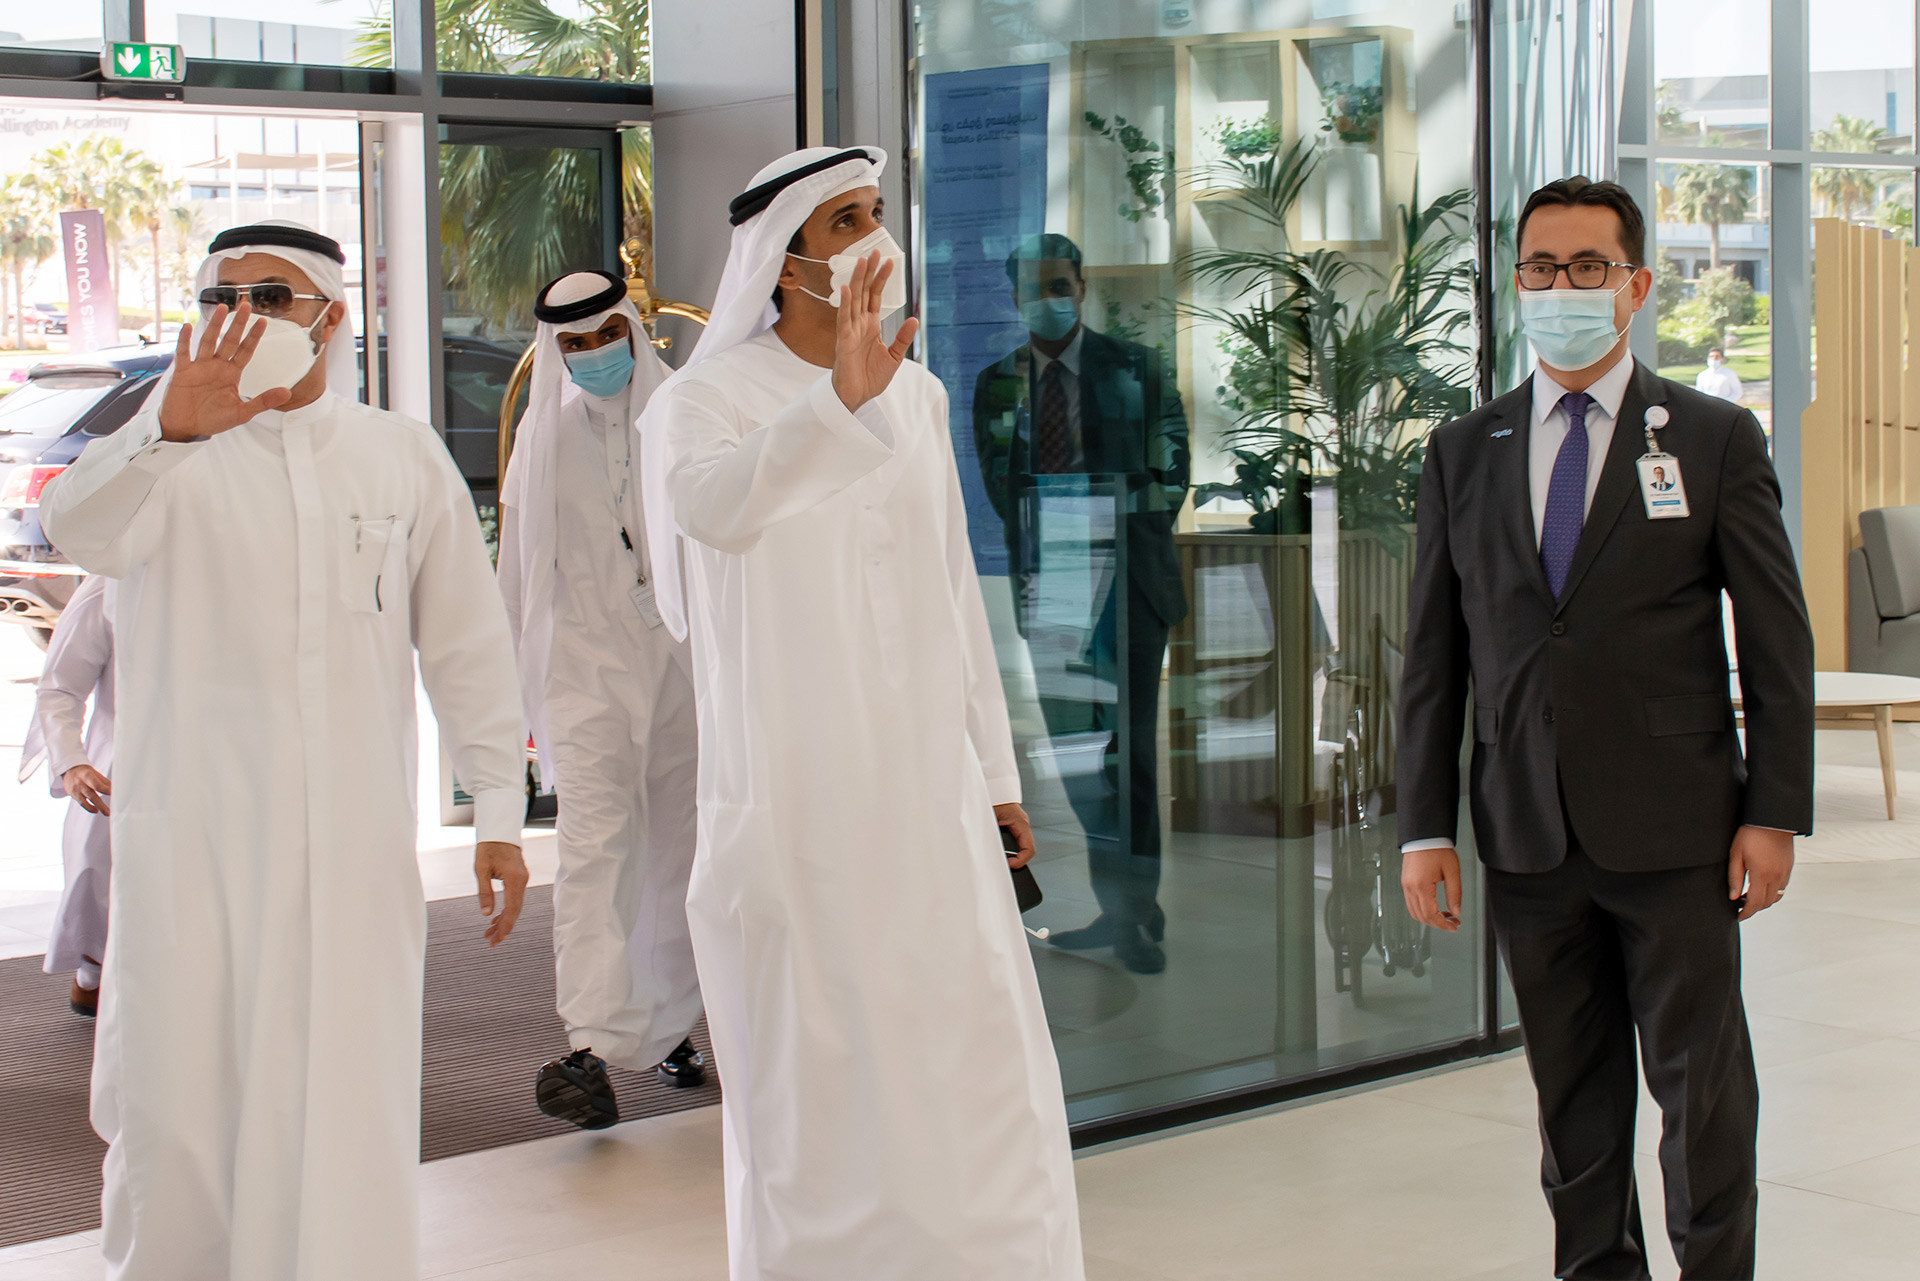 Dr. Fatih The CEO of Fakeeh University Hospital Welcoming H.E Abdulla Al-Basti